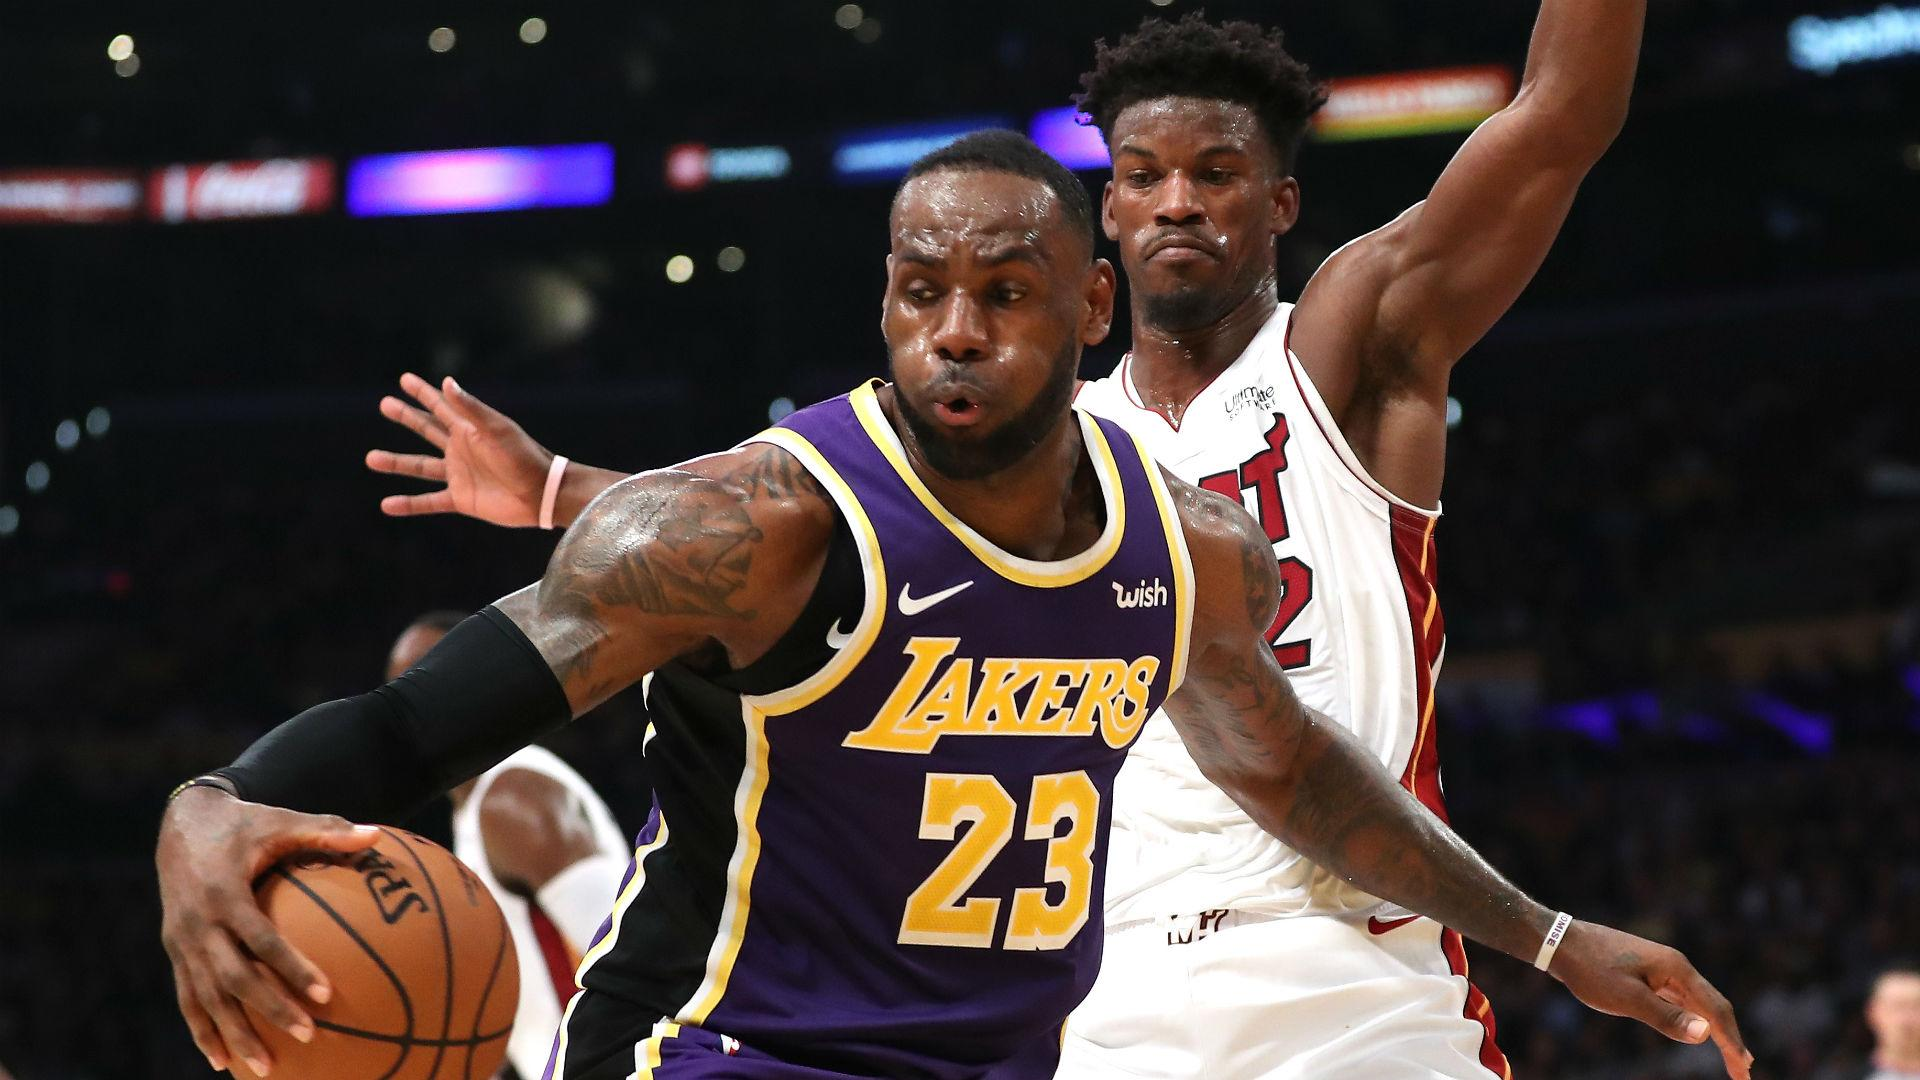 NBA Finals schedule 2020: Dates, times, TV channels for Heat